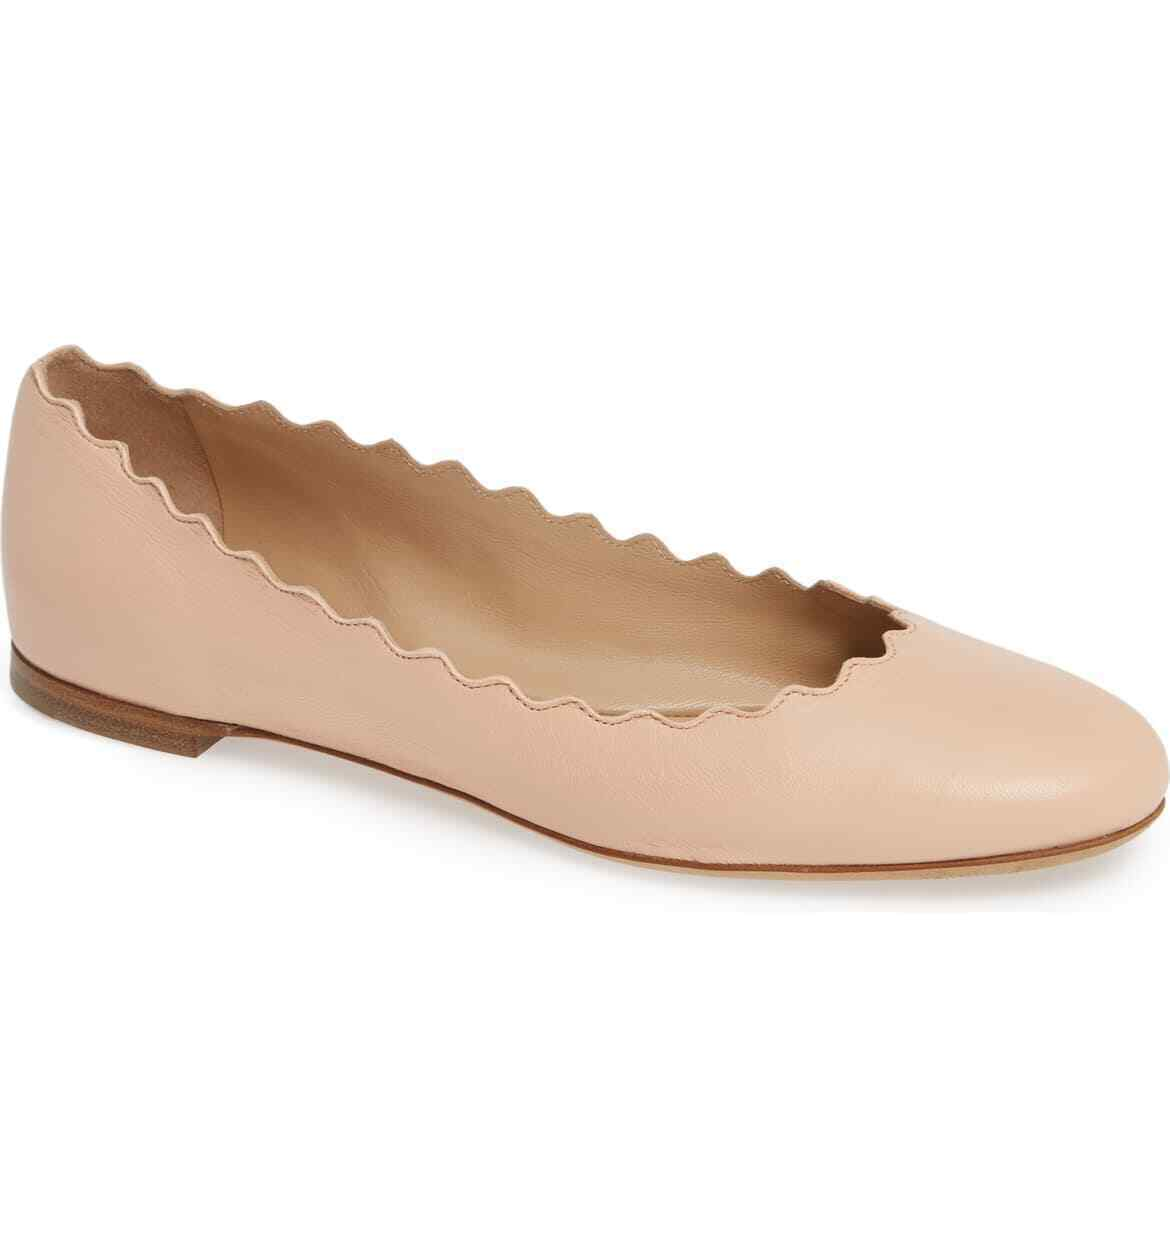 Primary image for CHLOE Lauren' Scalloped Ballet Flat Size 40.5